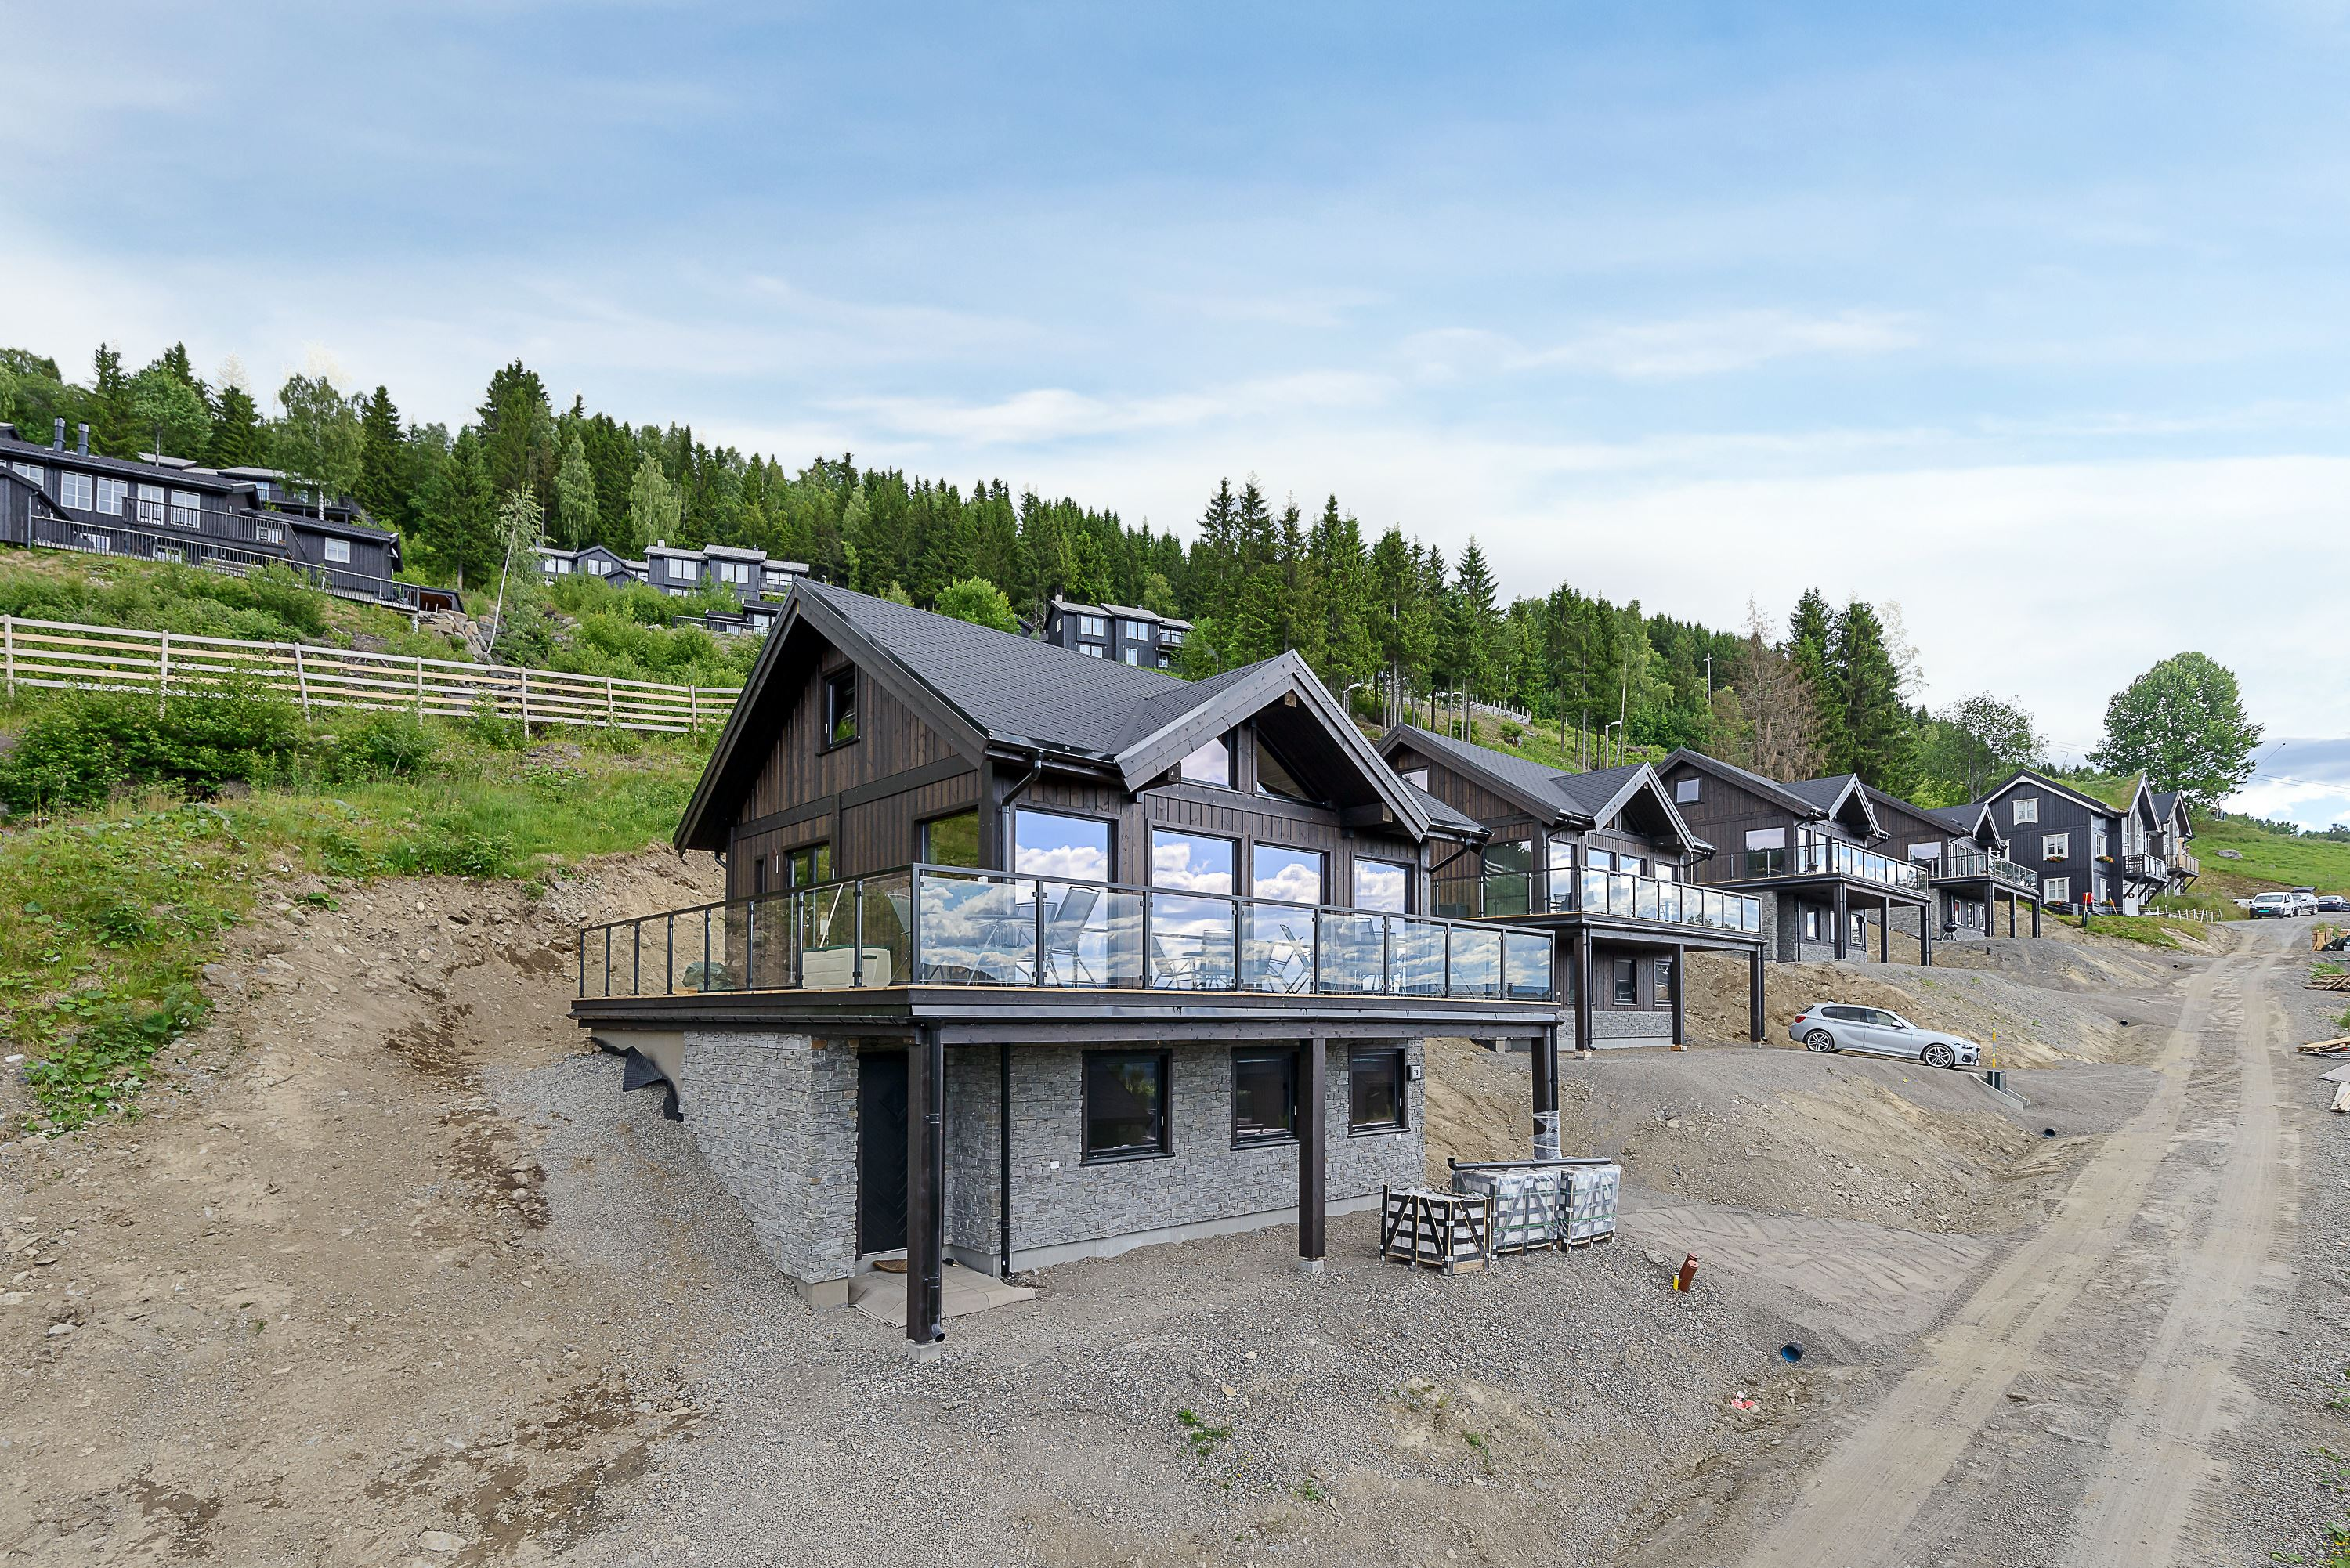 Hafjell Gard chalet 79